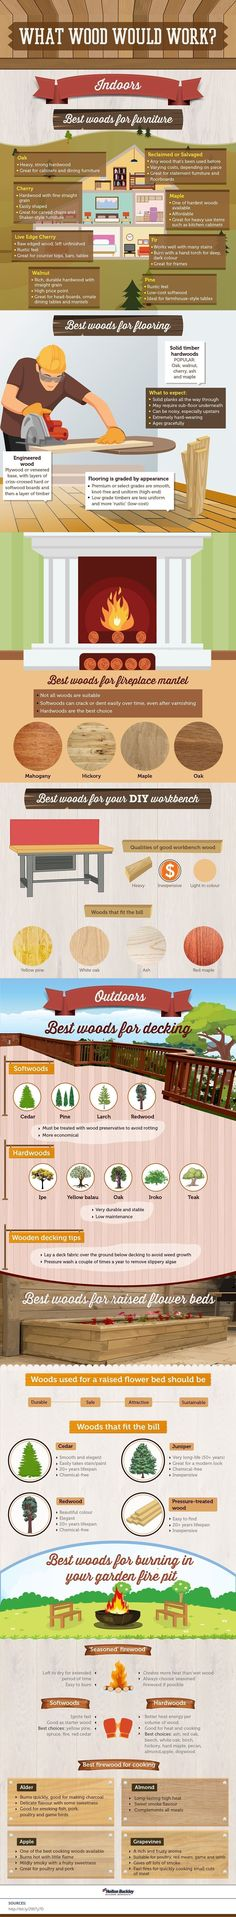 Which Wood is Best for Furniture, Flooring, Outdoors Infographic. Topic: carpenter, carpentry, woodworking, interior design, home improvement. #woodworkinginfographic